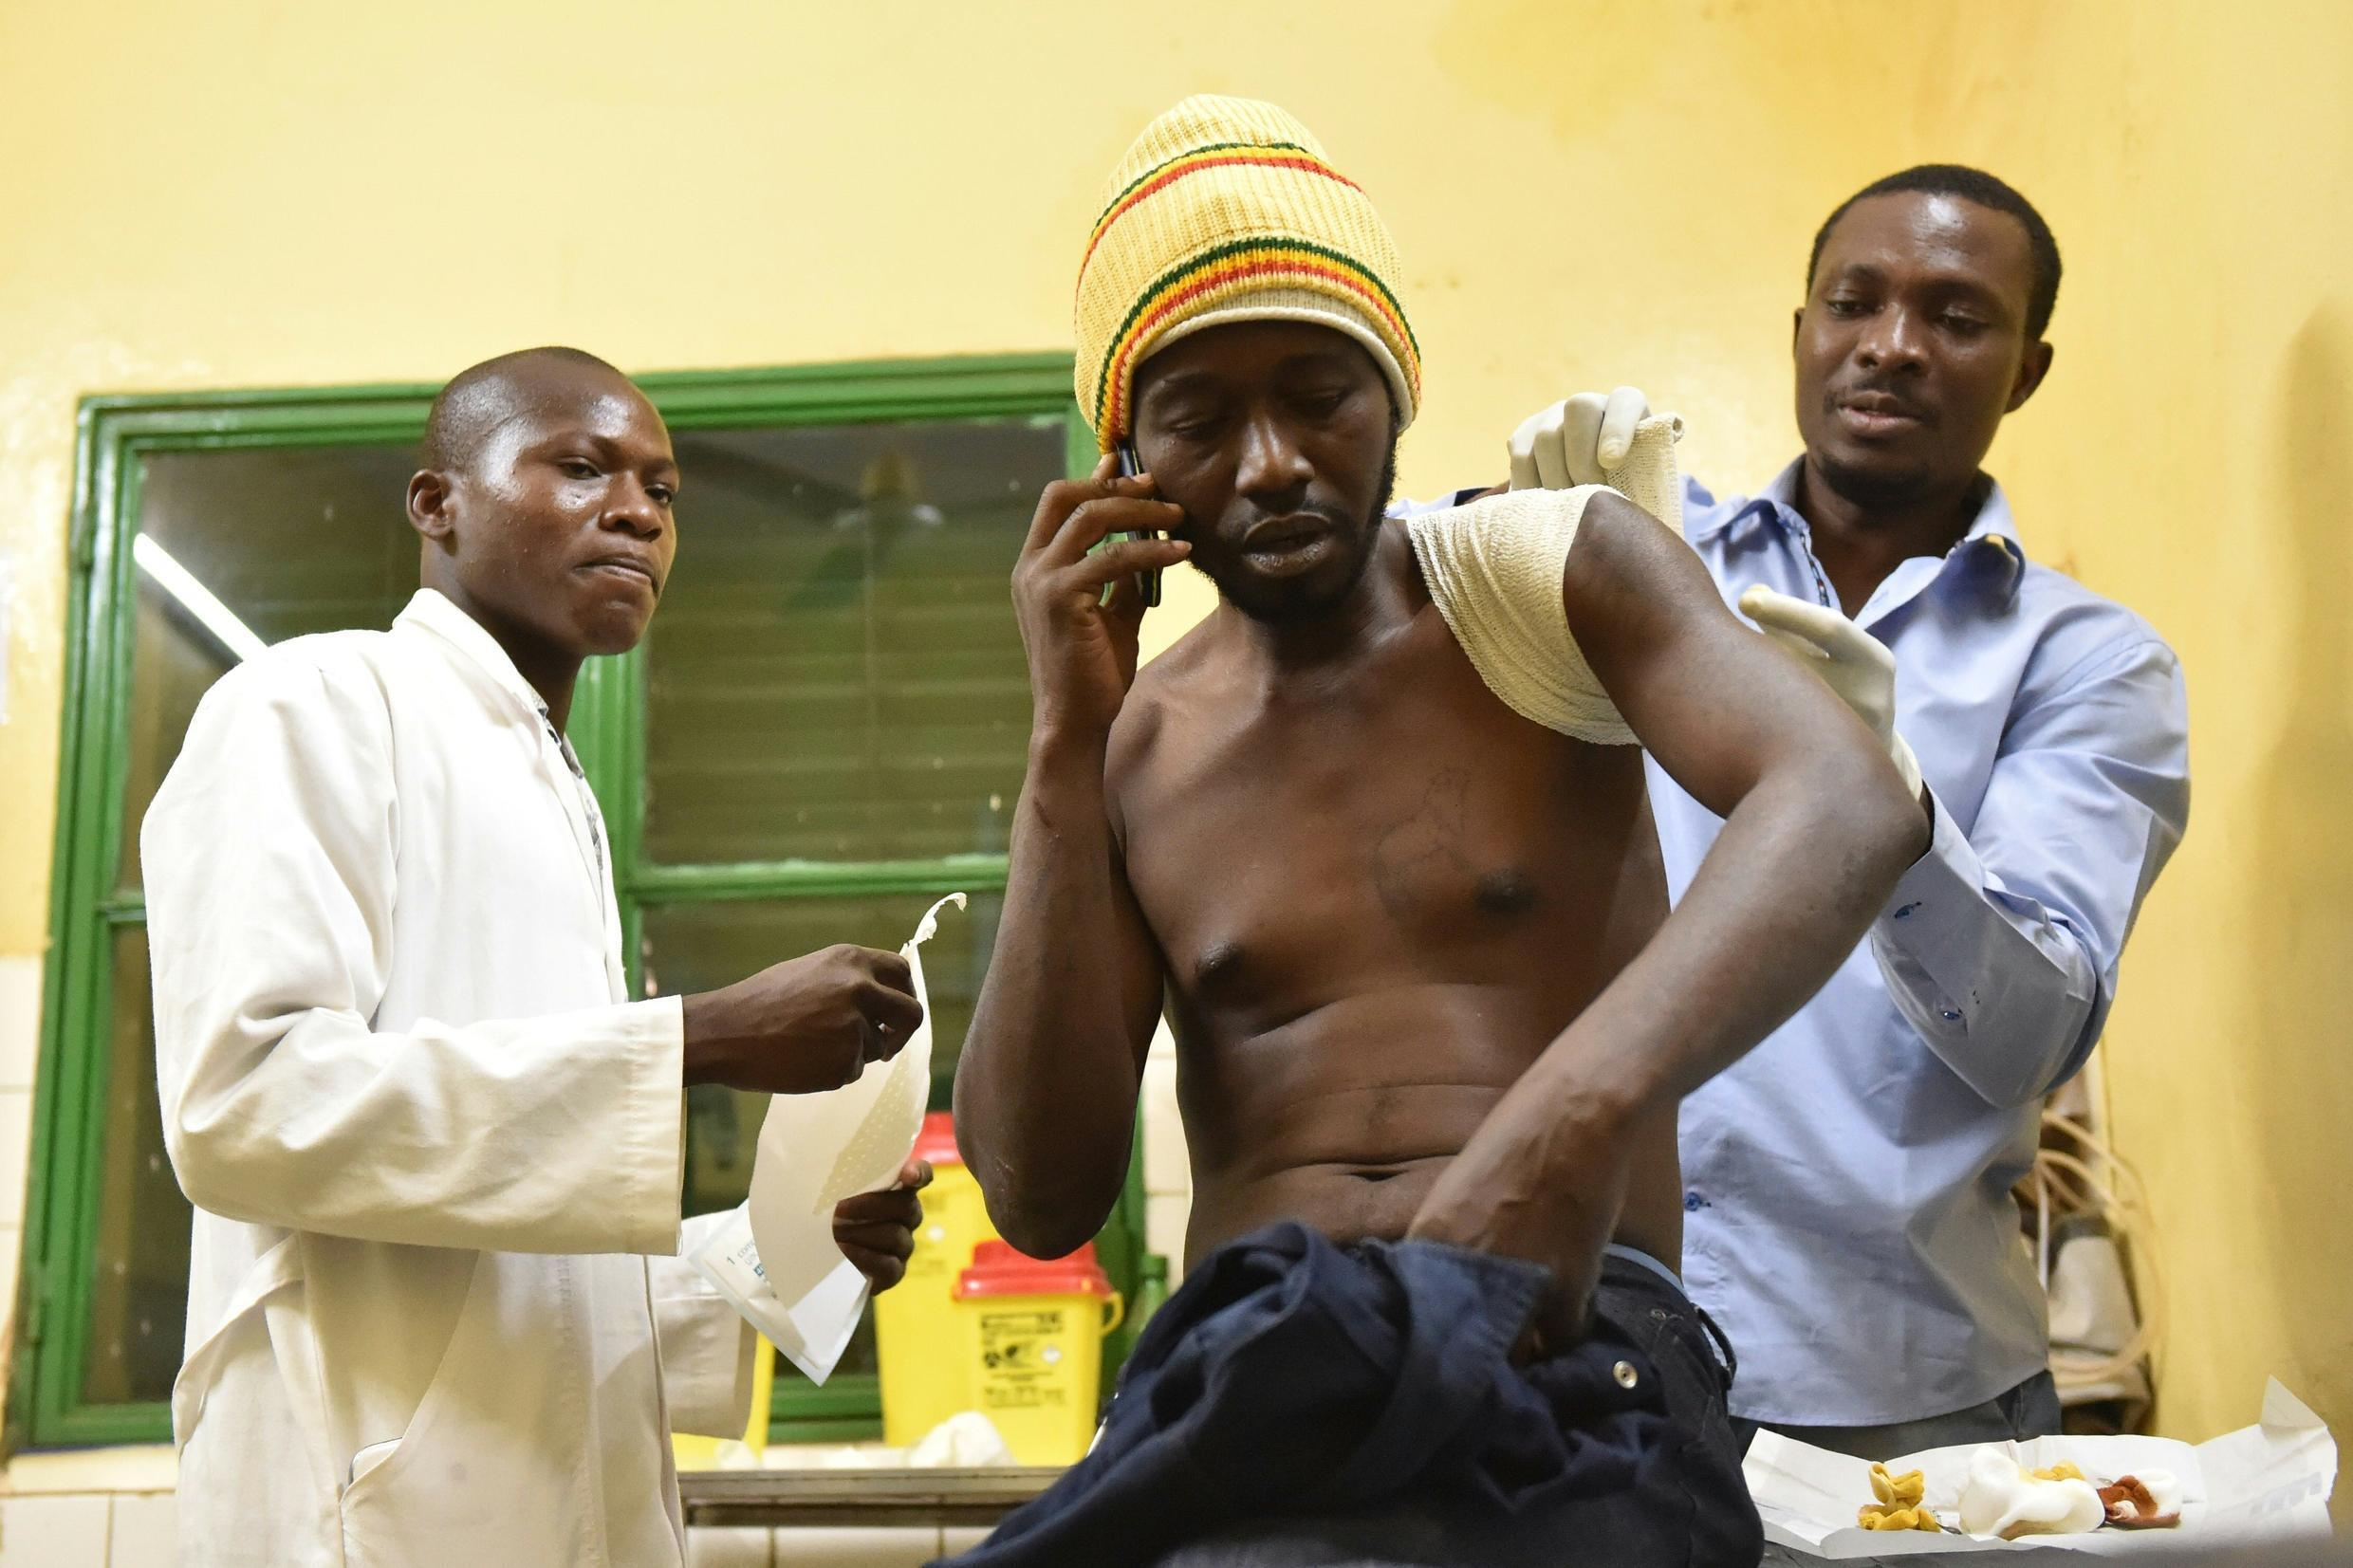 One of the wounded being cared for in Ouagadougou's Yagaldo Ouédraogo on 16 January 2016